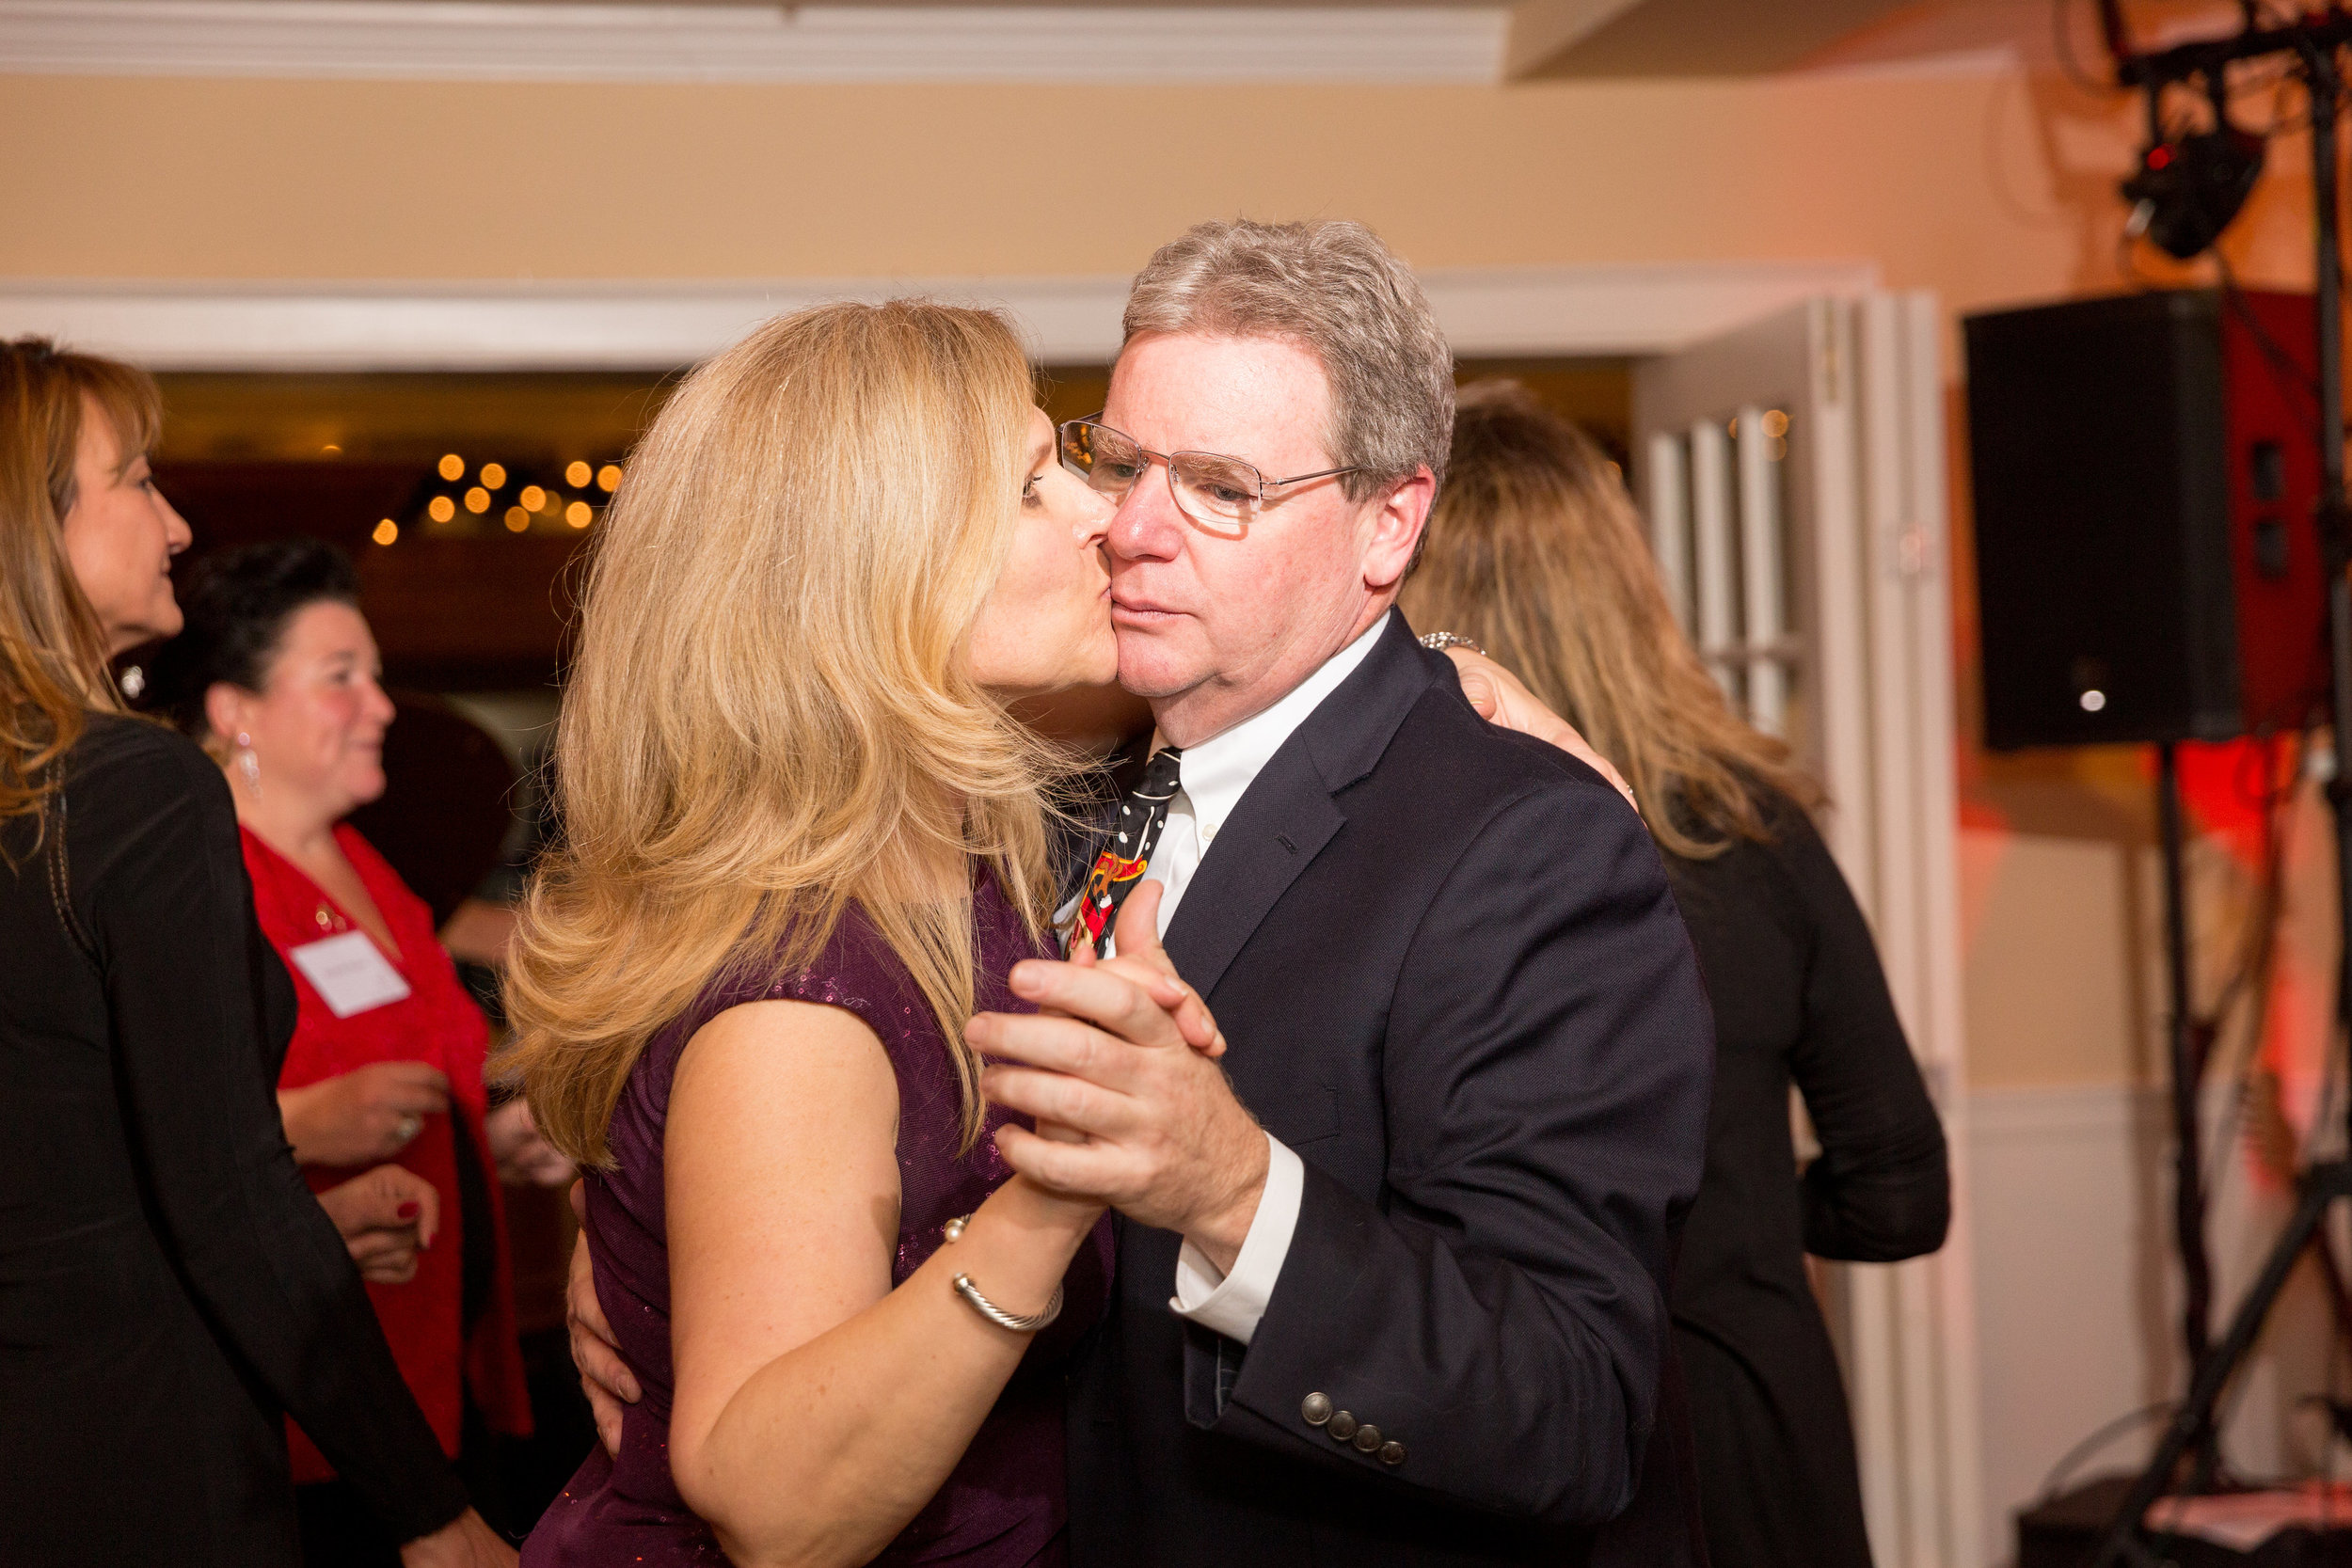 John with his wife, Pia, at the 2016 Benchmark holiday party.